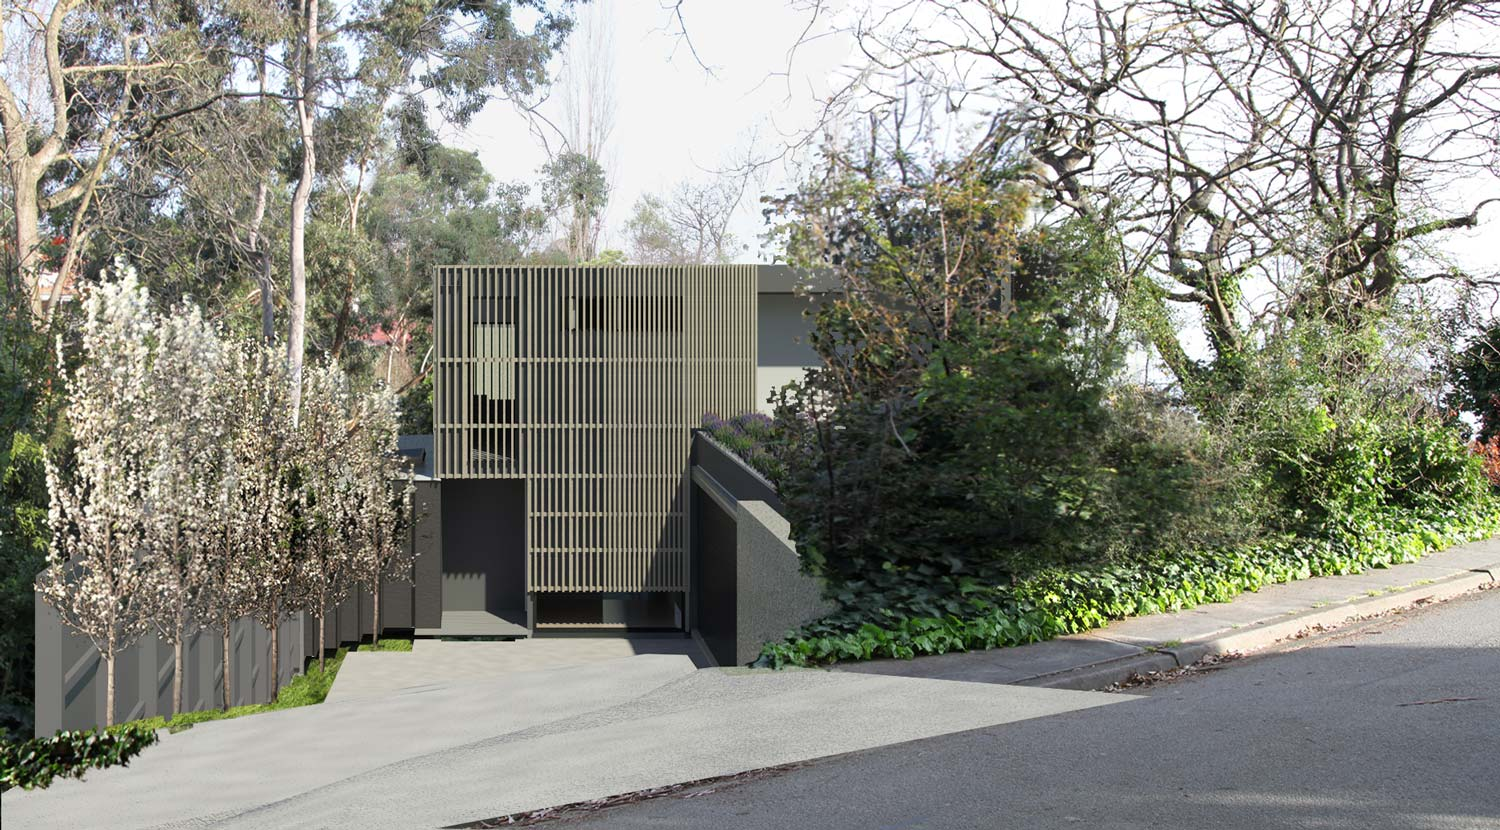 surrey-hills-contemporary-houses-by-warc-studio-01.jpg